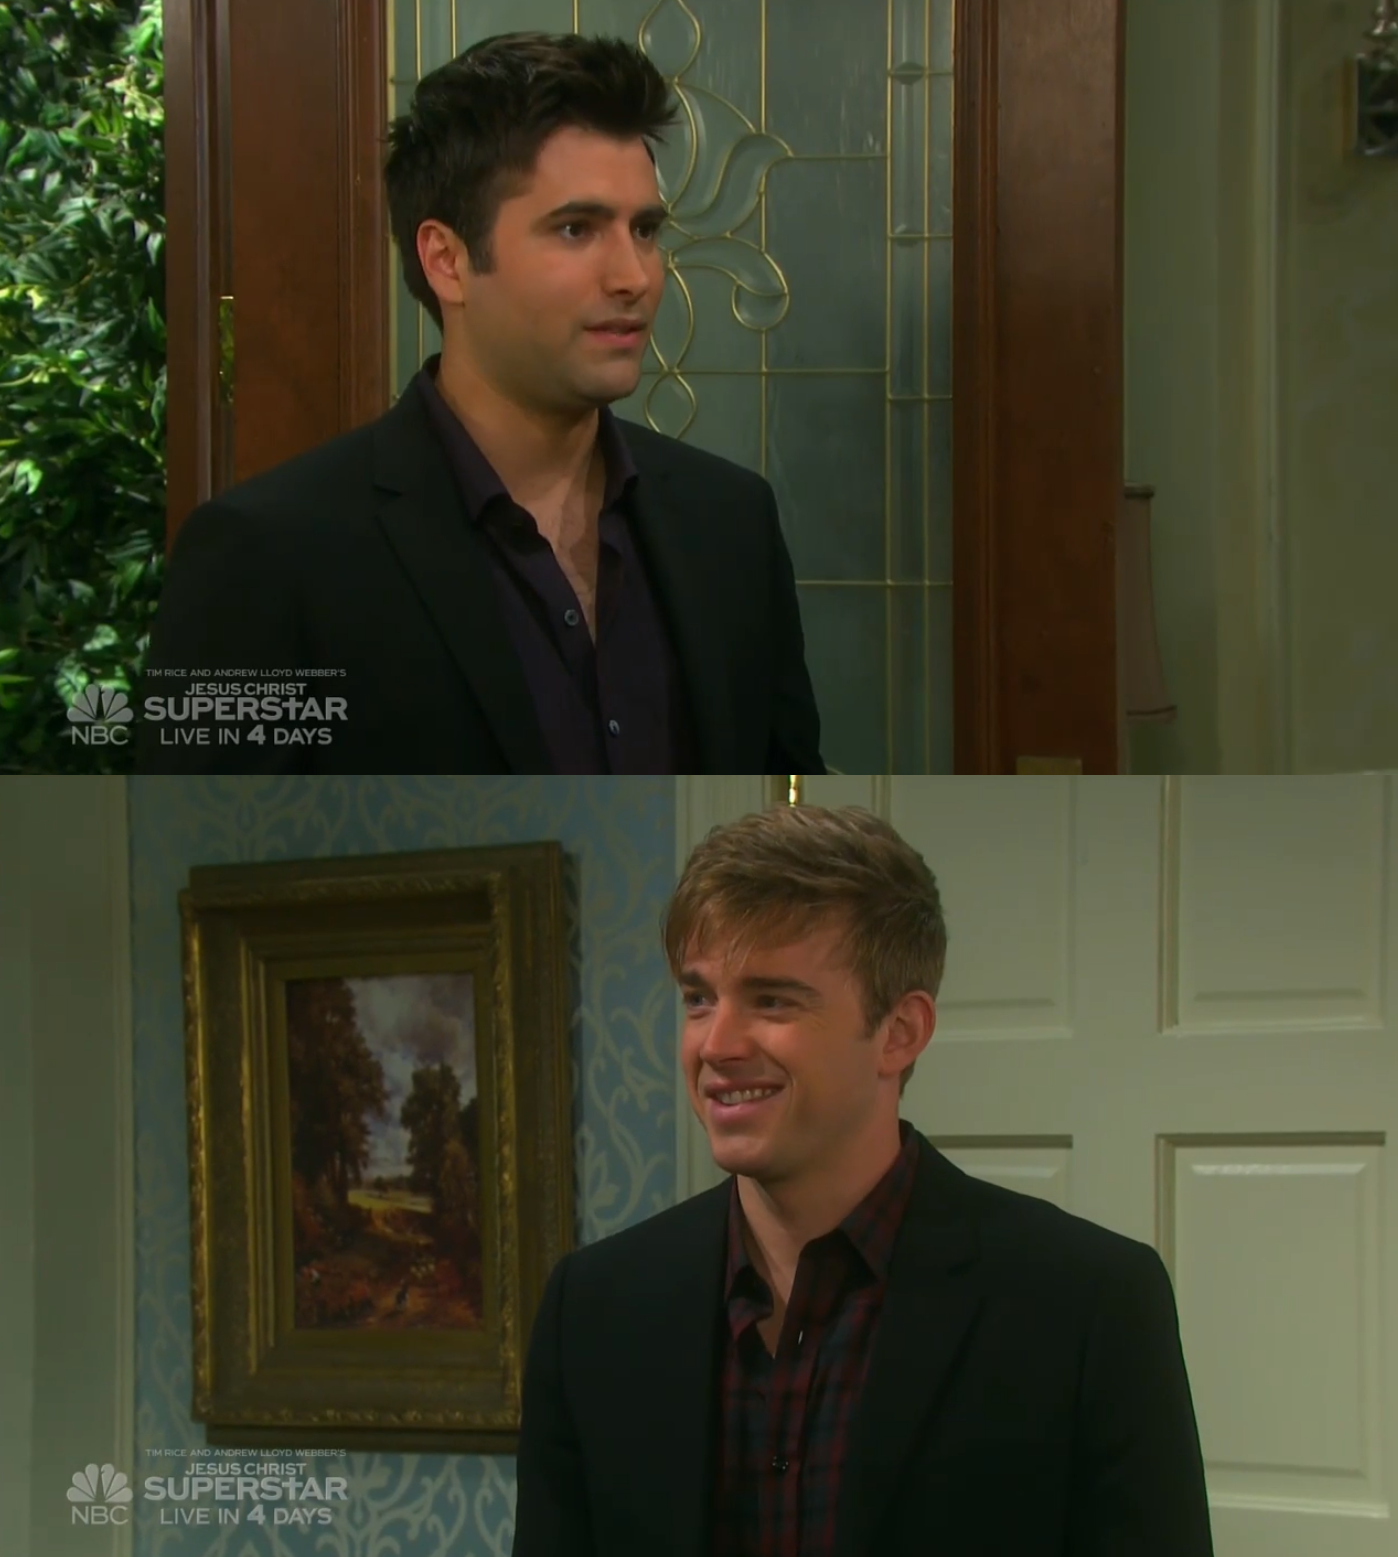 Sonny Kiriakis You Know When I Said I Hope You Wouldn T Cheat On Paul The Way You Did With Me That Was Complete Days Of Our Lives I Hope You Know